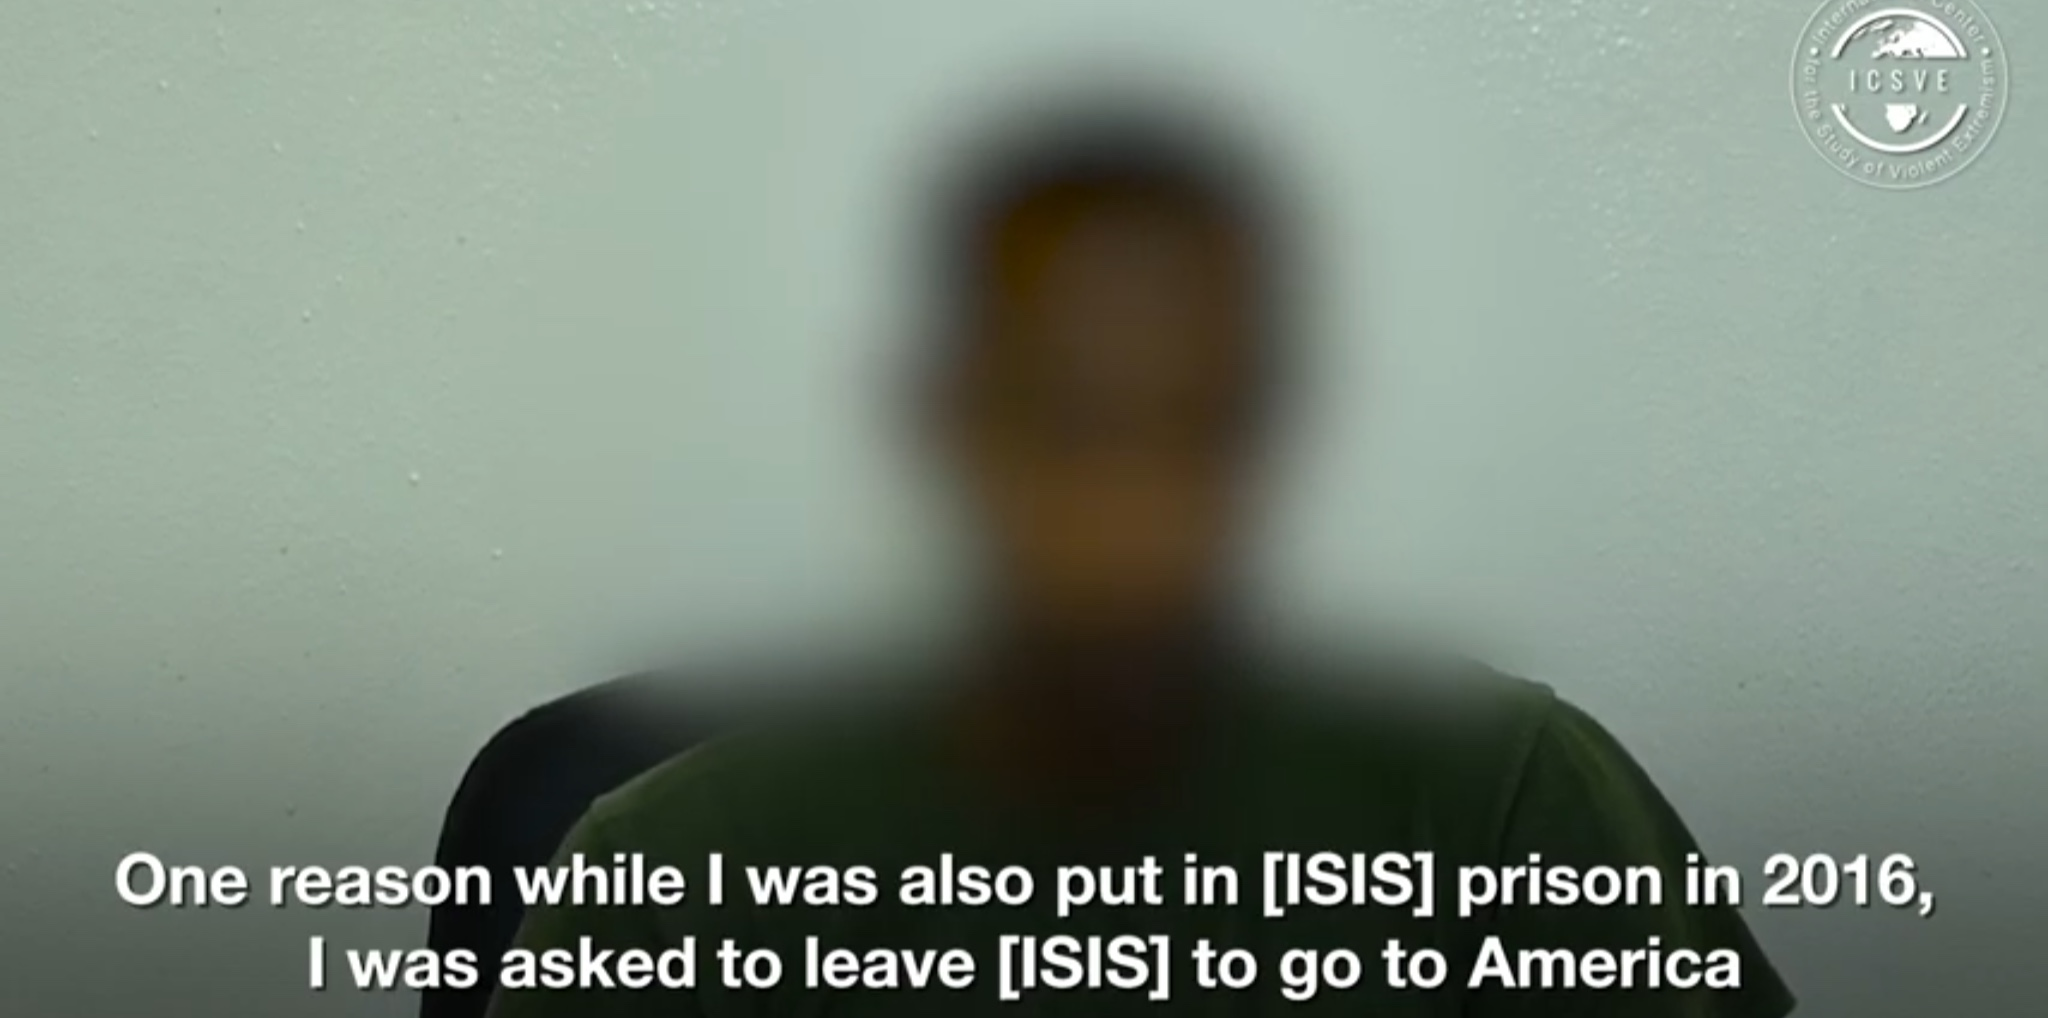 Abu Henricki is interviewed about his being recruited by ISIS to attack the U.S. financial sector, May 12, 2019. YouTube screencapture.